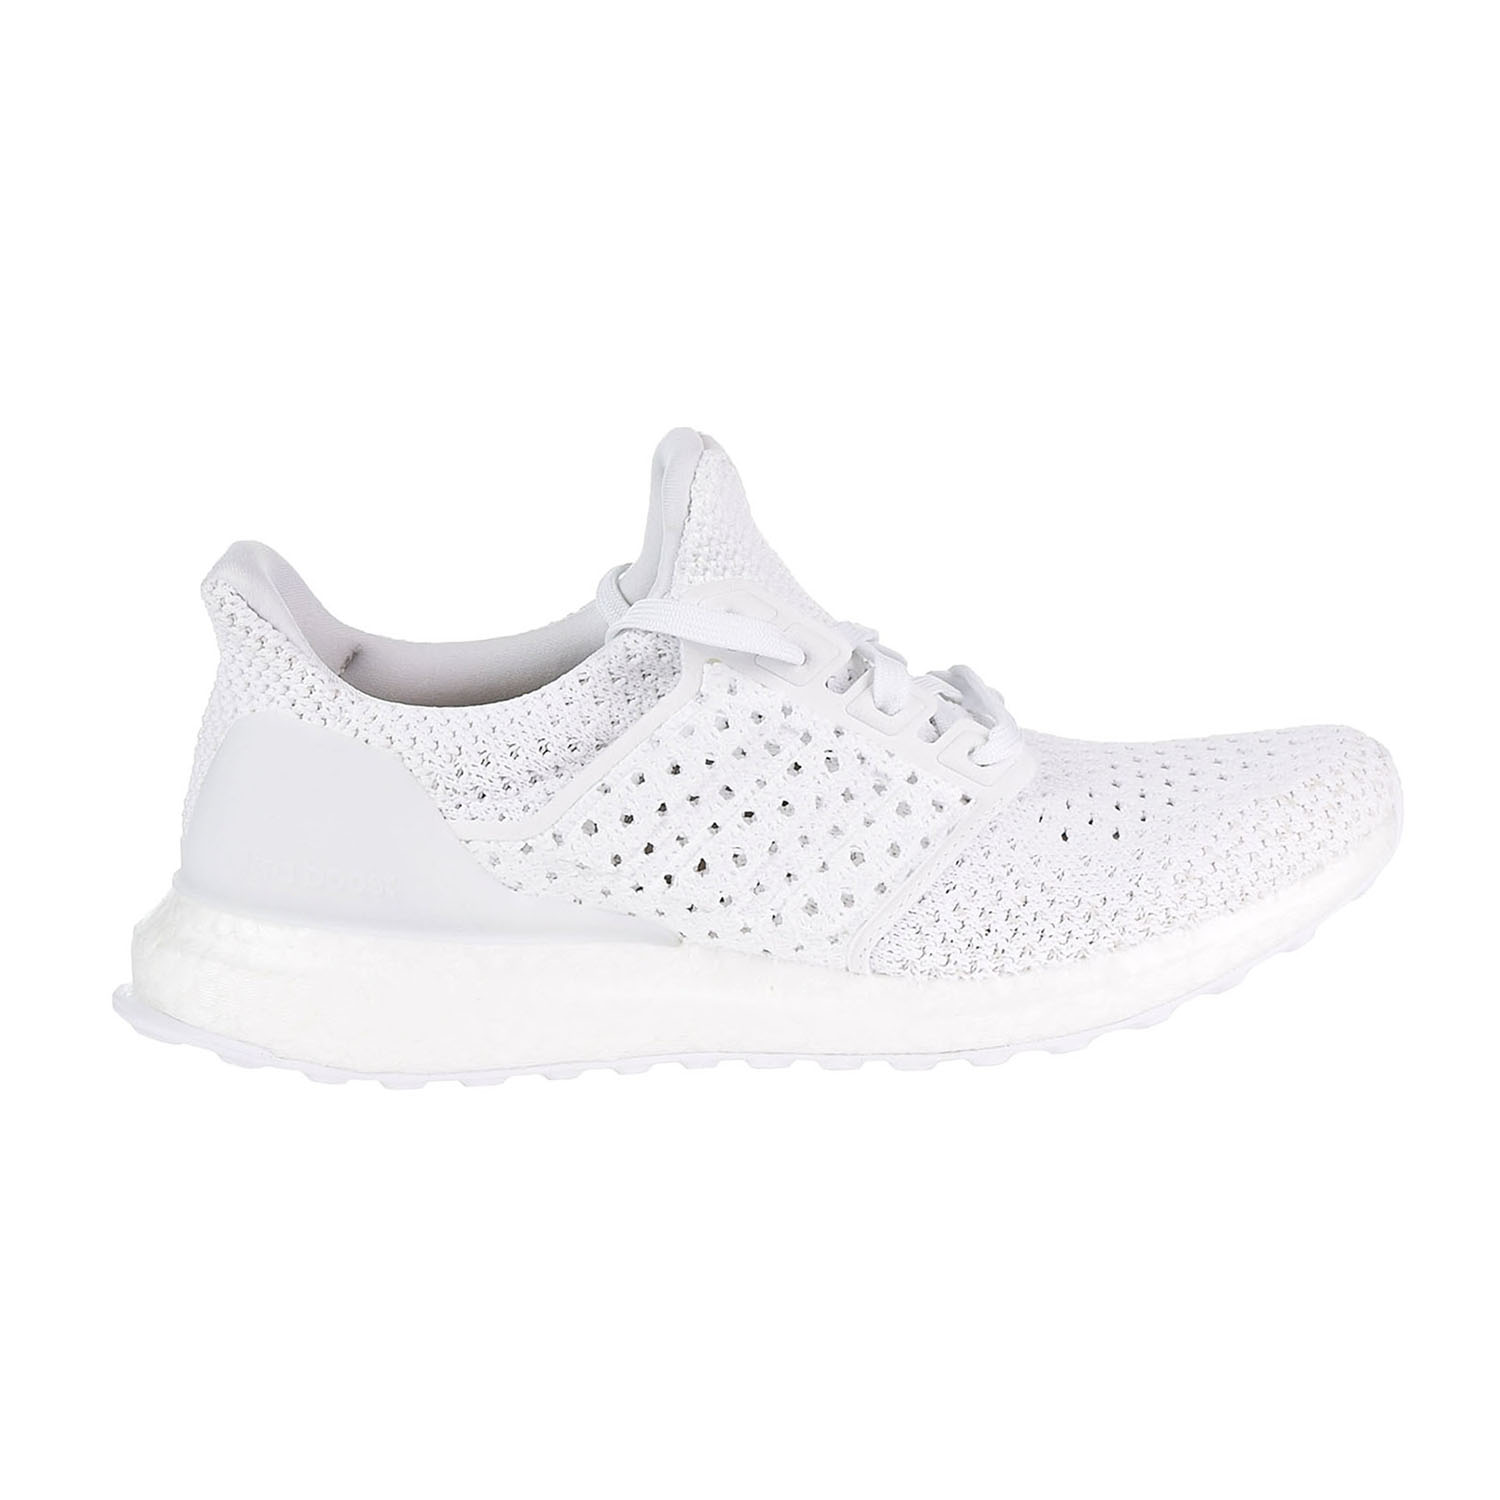 eaf65bf40f78 Adidas Ultraboost Clima J Big Kid s Shoes Cloud White Cloud White Grey  cp8773